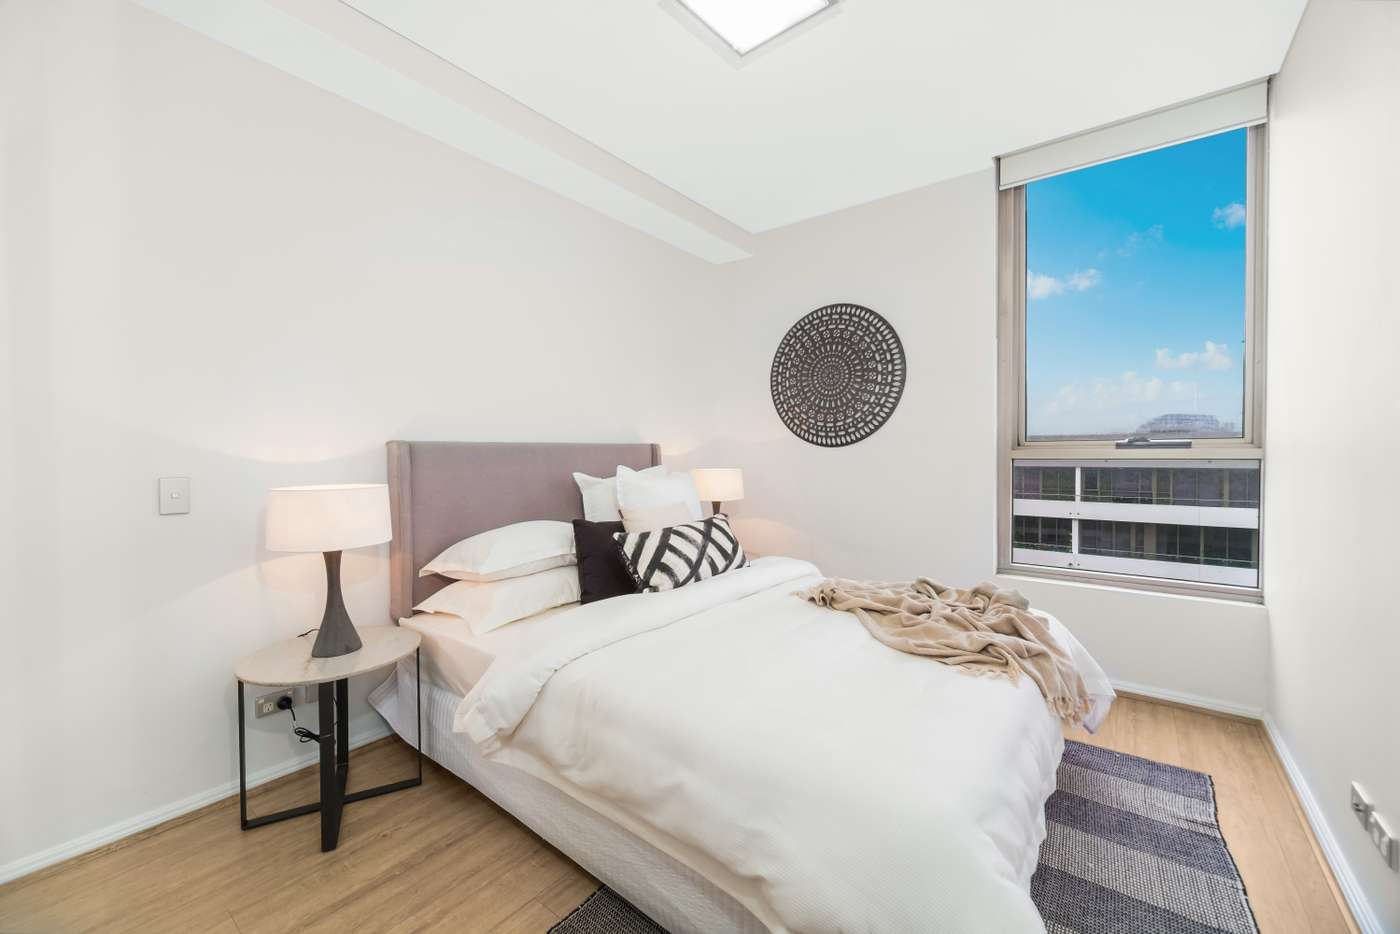 Sixth view of Homely apartment listing, 941/12 Victoria Park Parade, Zetland NSW 2017